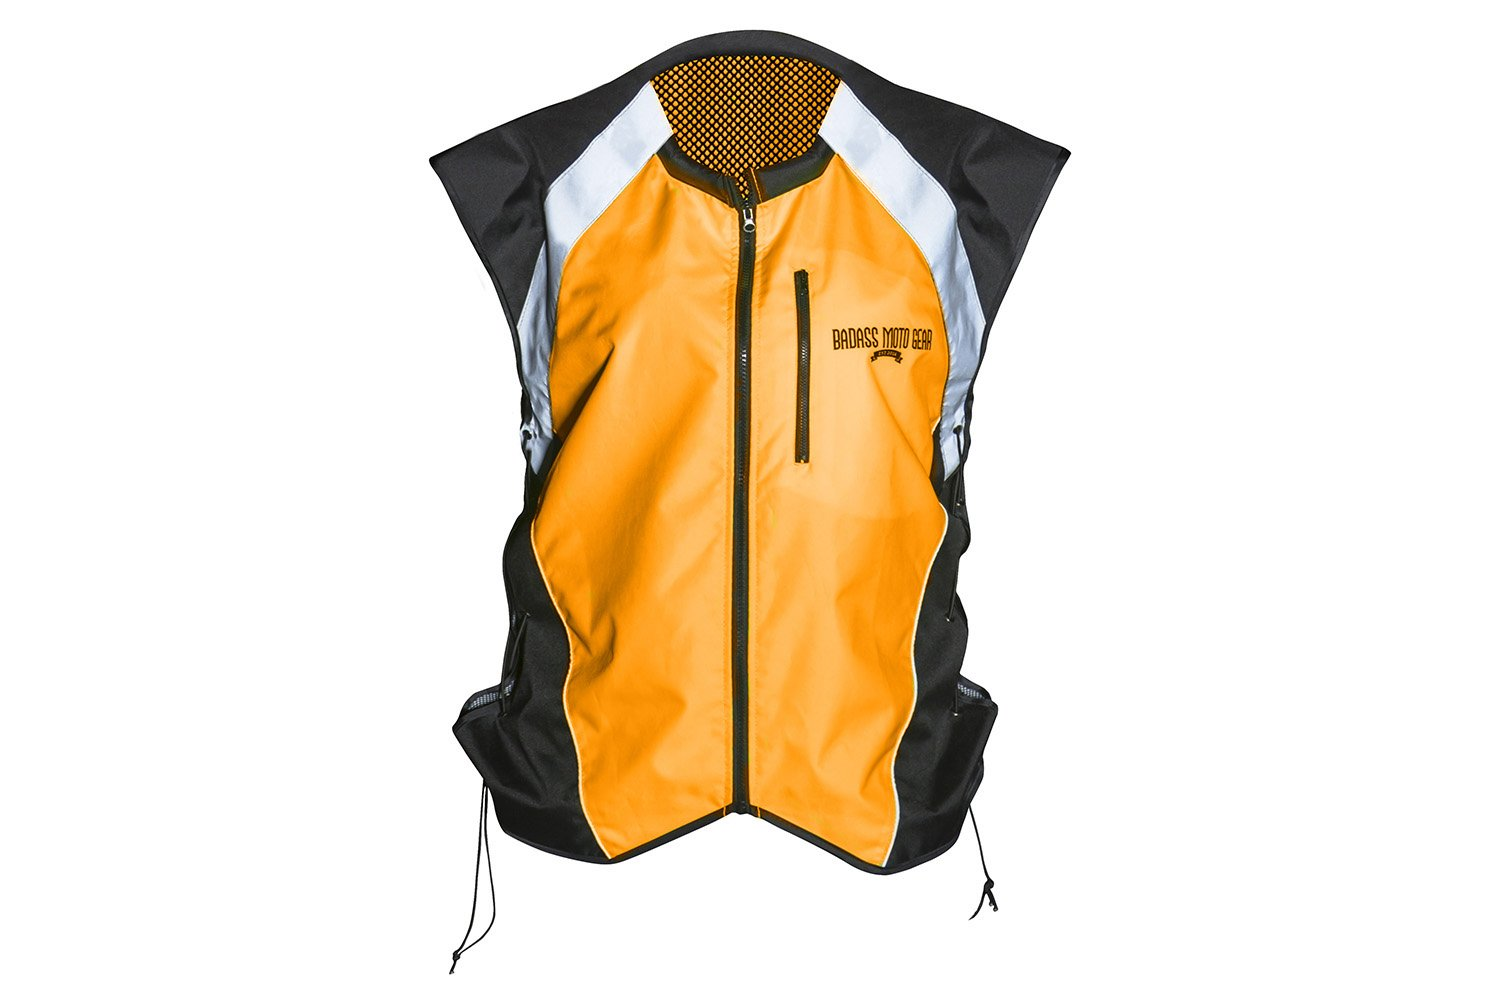 Badass Moto Gear Hi Vis Reflective Motorcycle Vest. Mil-Spec. No Logo, Fits Over Jackets. Adjustable Sides, Zipper Front & Pocket. Bikers, ATV, Hunting, Cycling, Military, XL BMGRV-Y-NL-XL